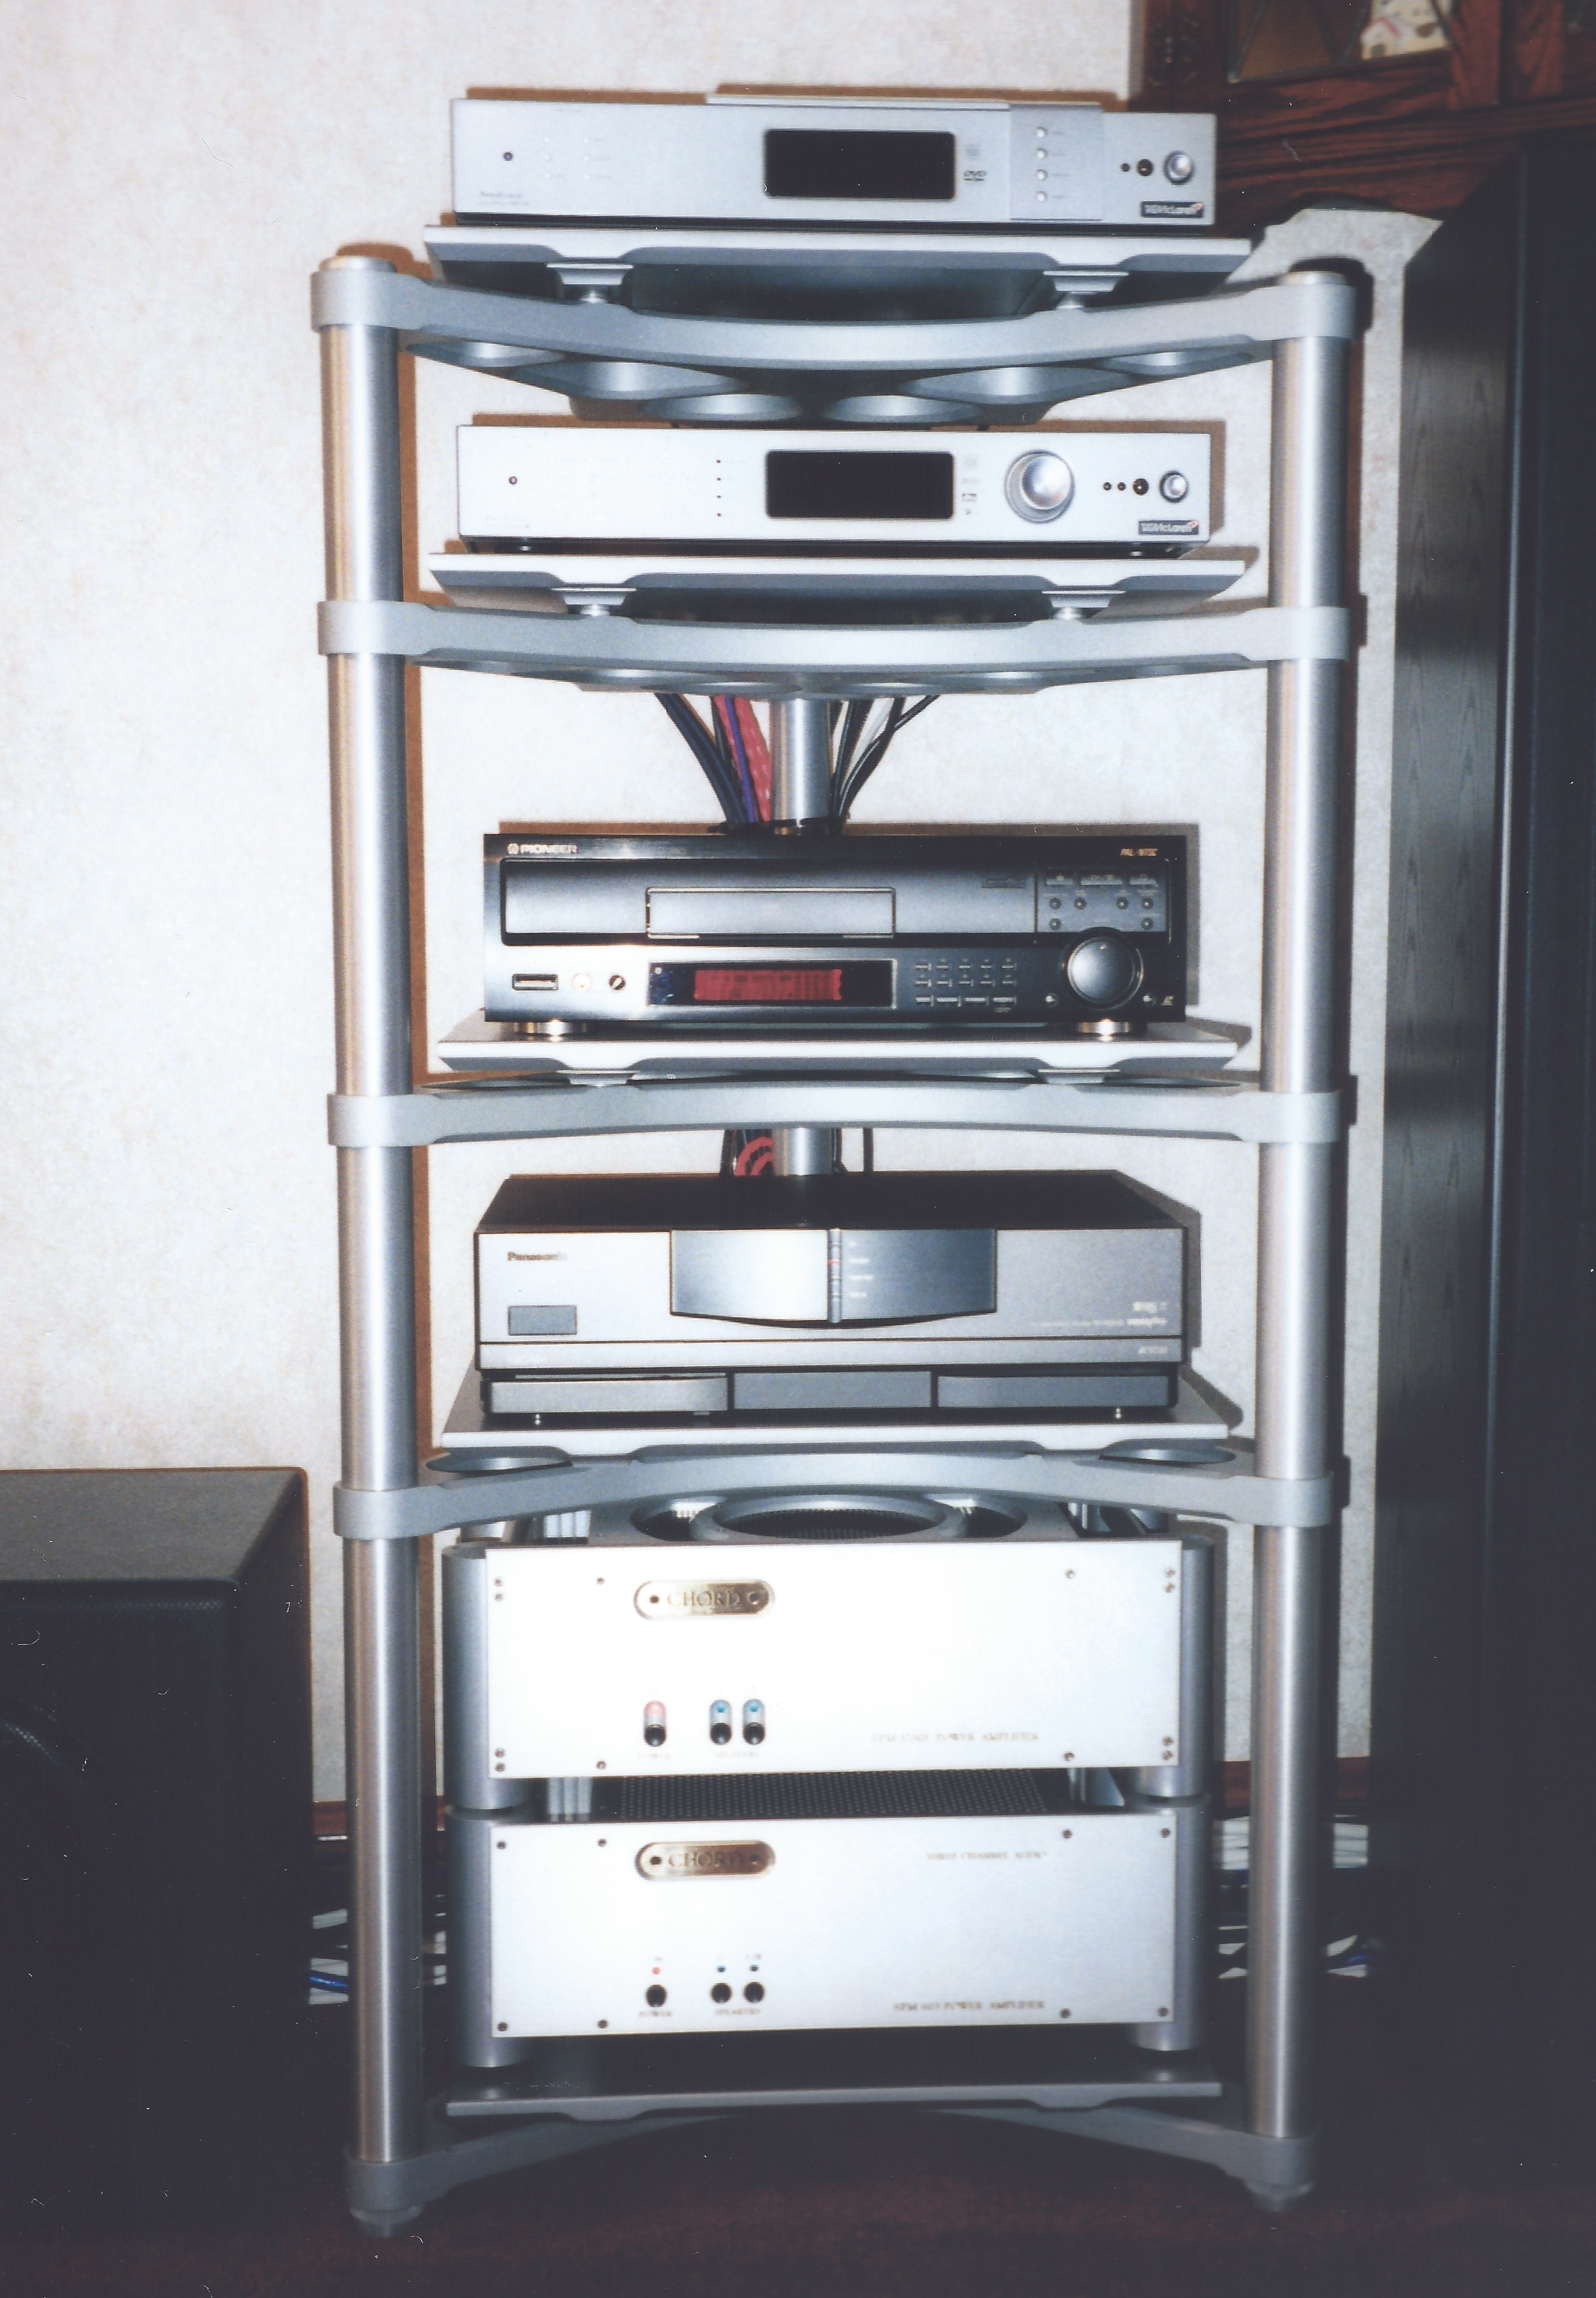 Image of a high end Hi-Fi stack comprising top-loading DVD player, sound processor, laserdisc player, video cassette deck and a pair of power amps on a substantial alloy triangular base stand